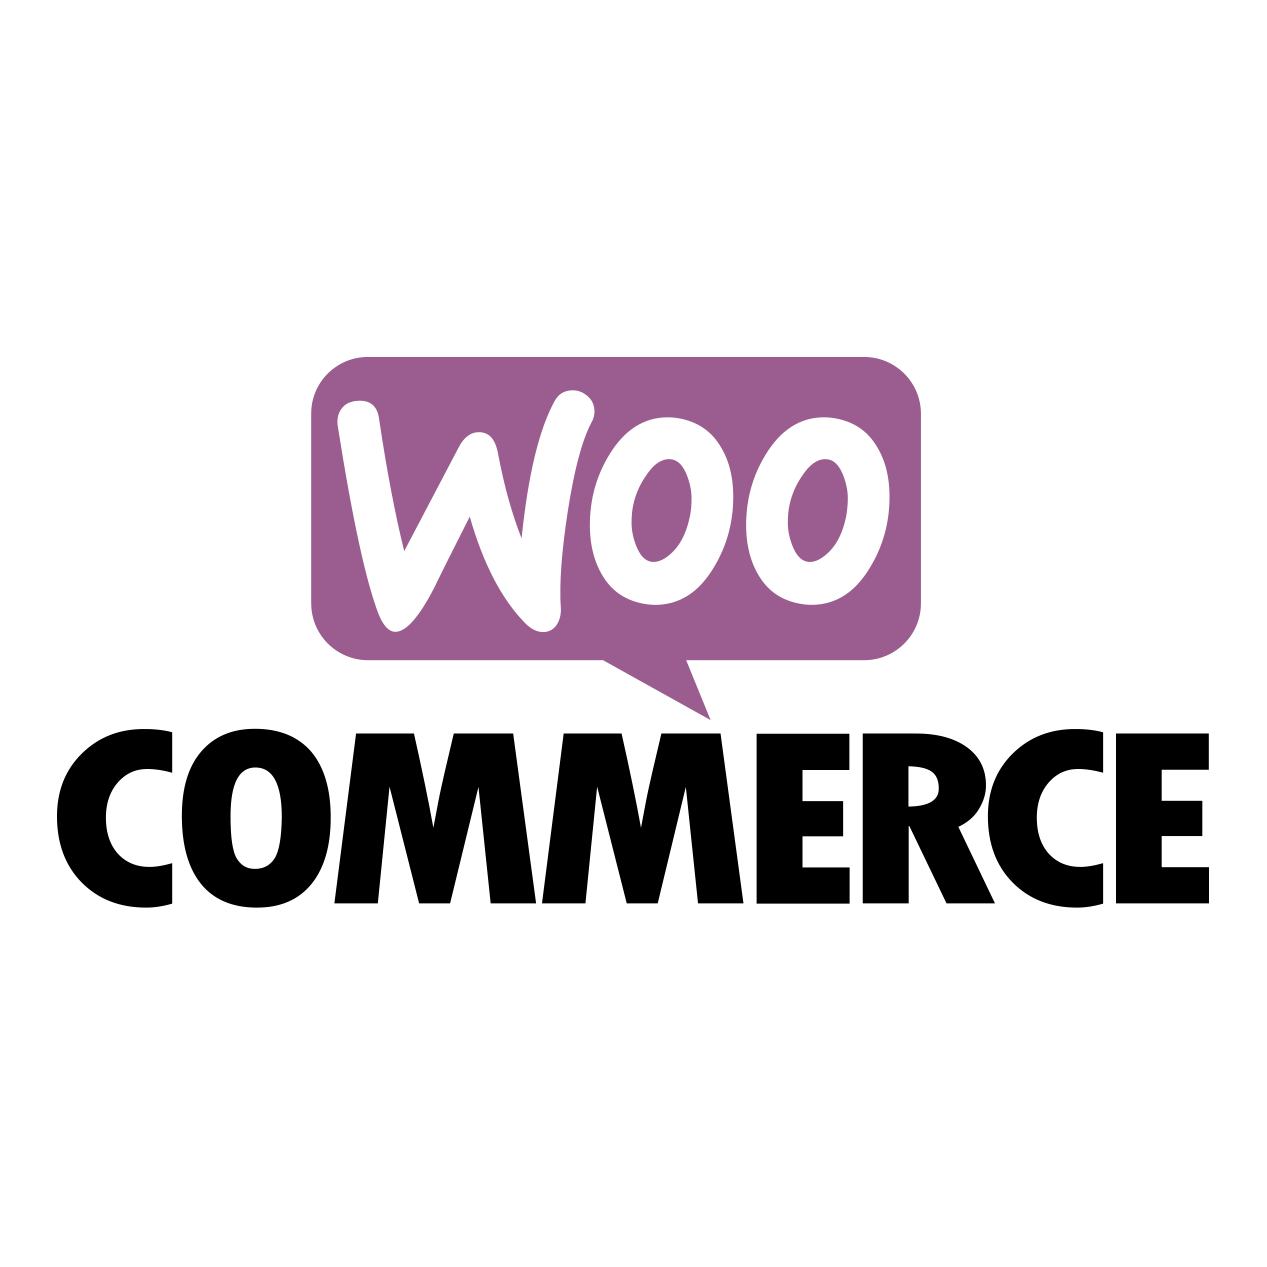 Sell digital goods on WooCommerce using a digital distribution system that scales. Automate your WooCommerce digital product sales using ZeroOne eCommerce. ZeroOne helps vendors distribute game keys, gift cards, photography, ebooks, and more.